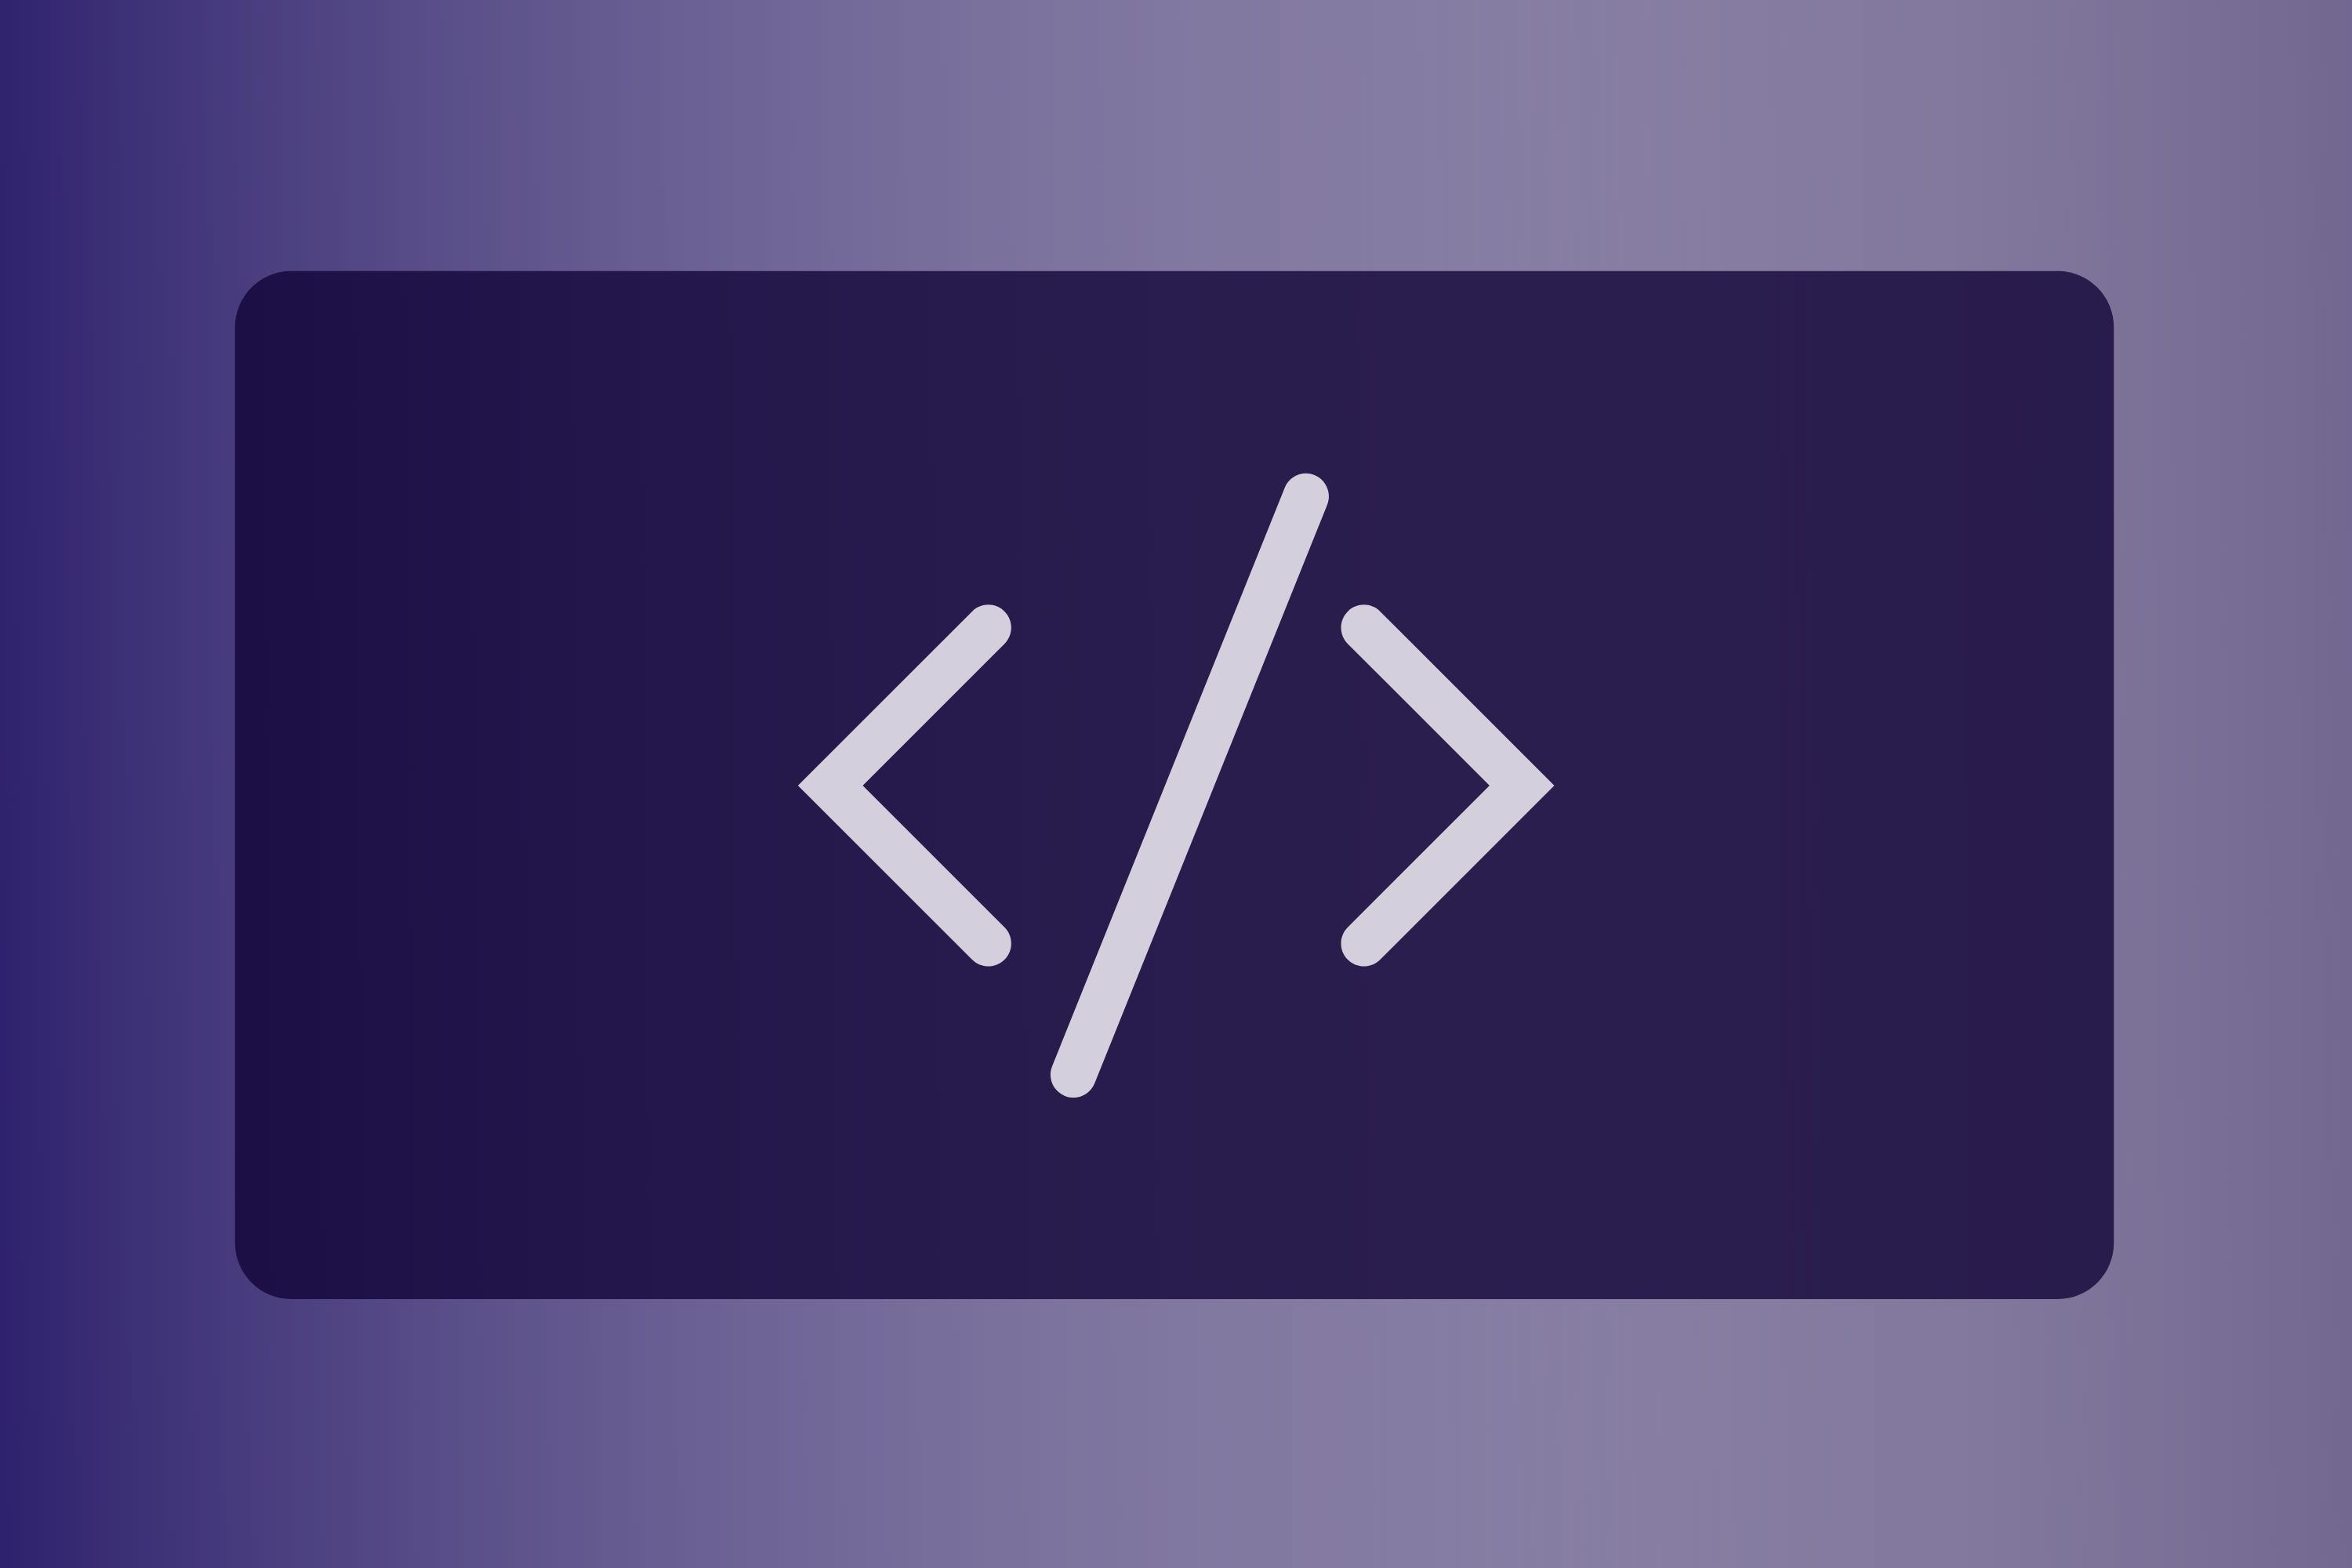 To code or not to code: Increasing the level of freedom with user-friendly software